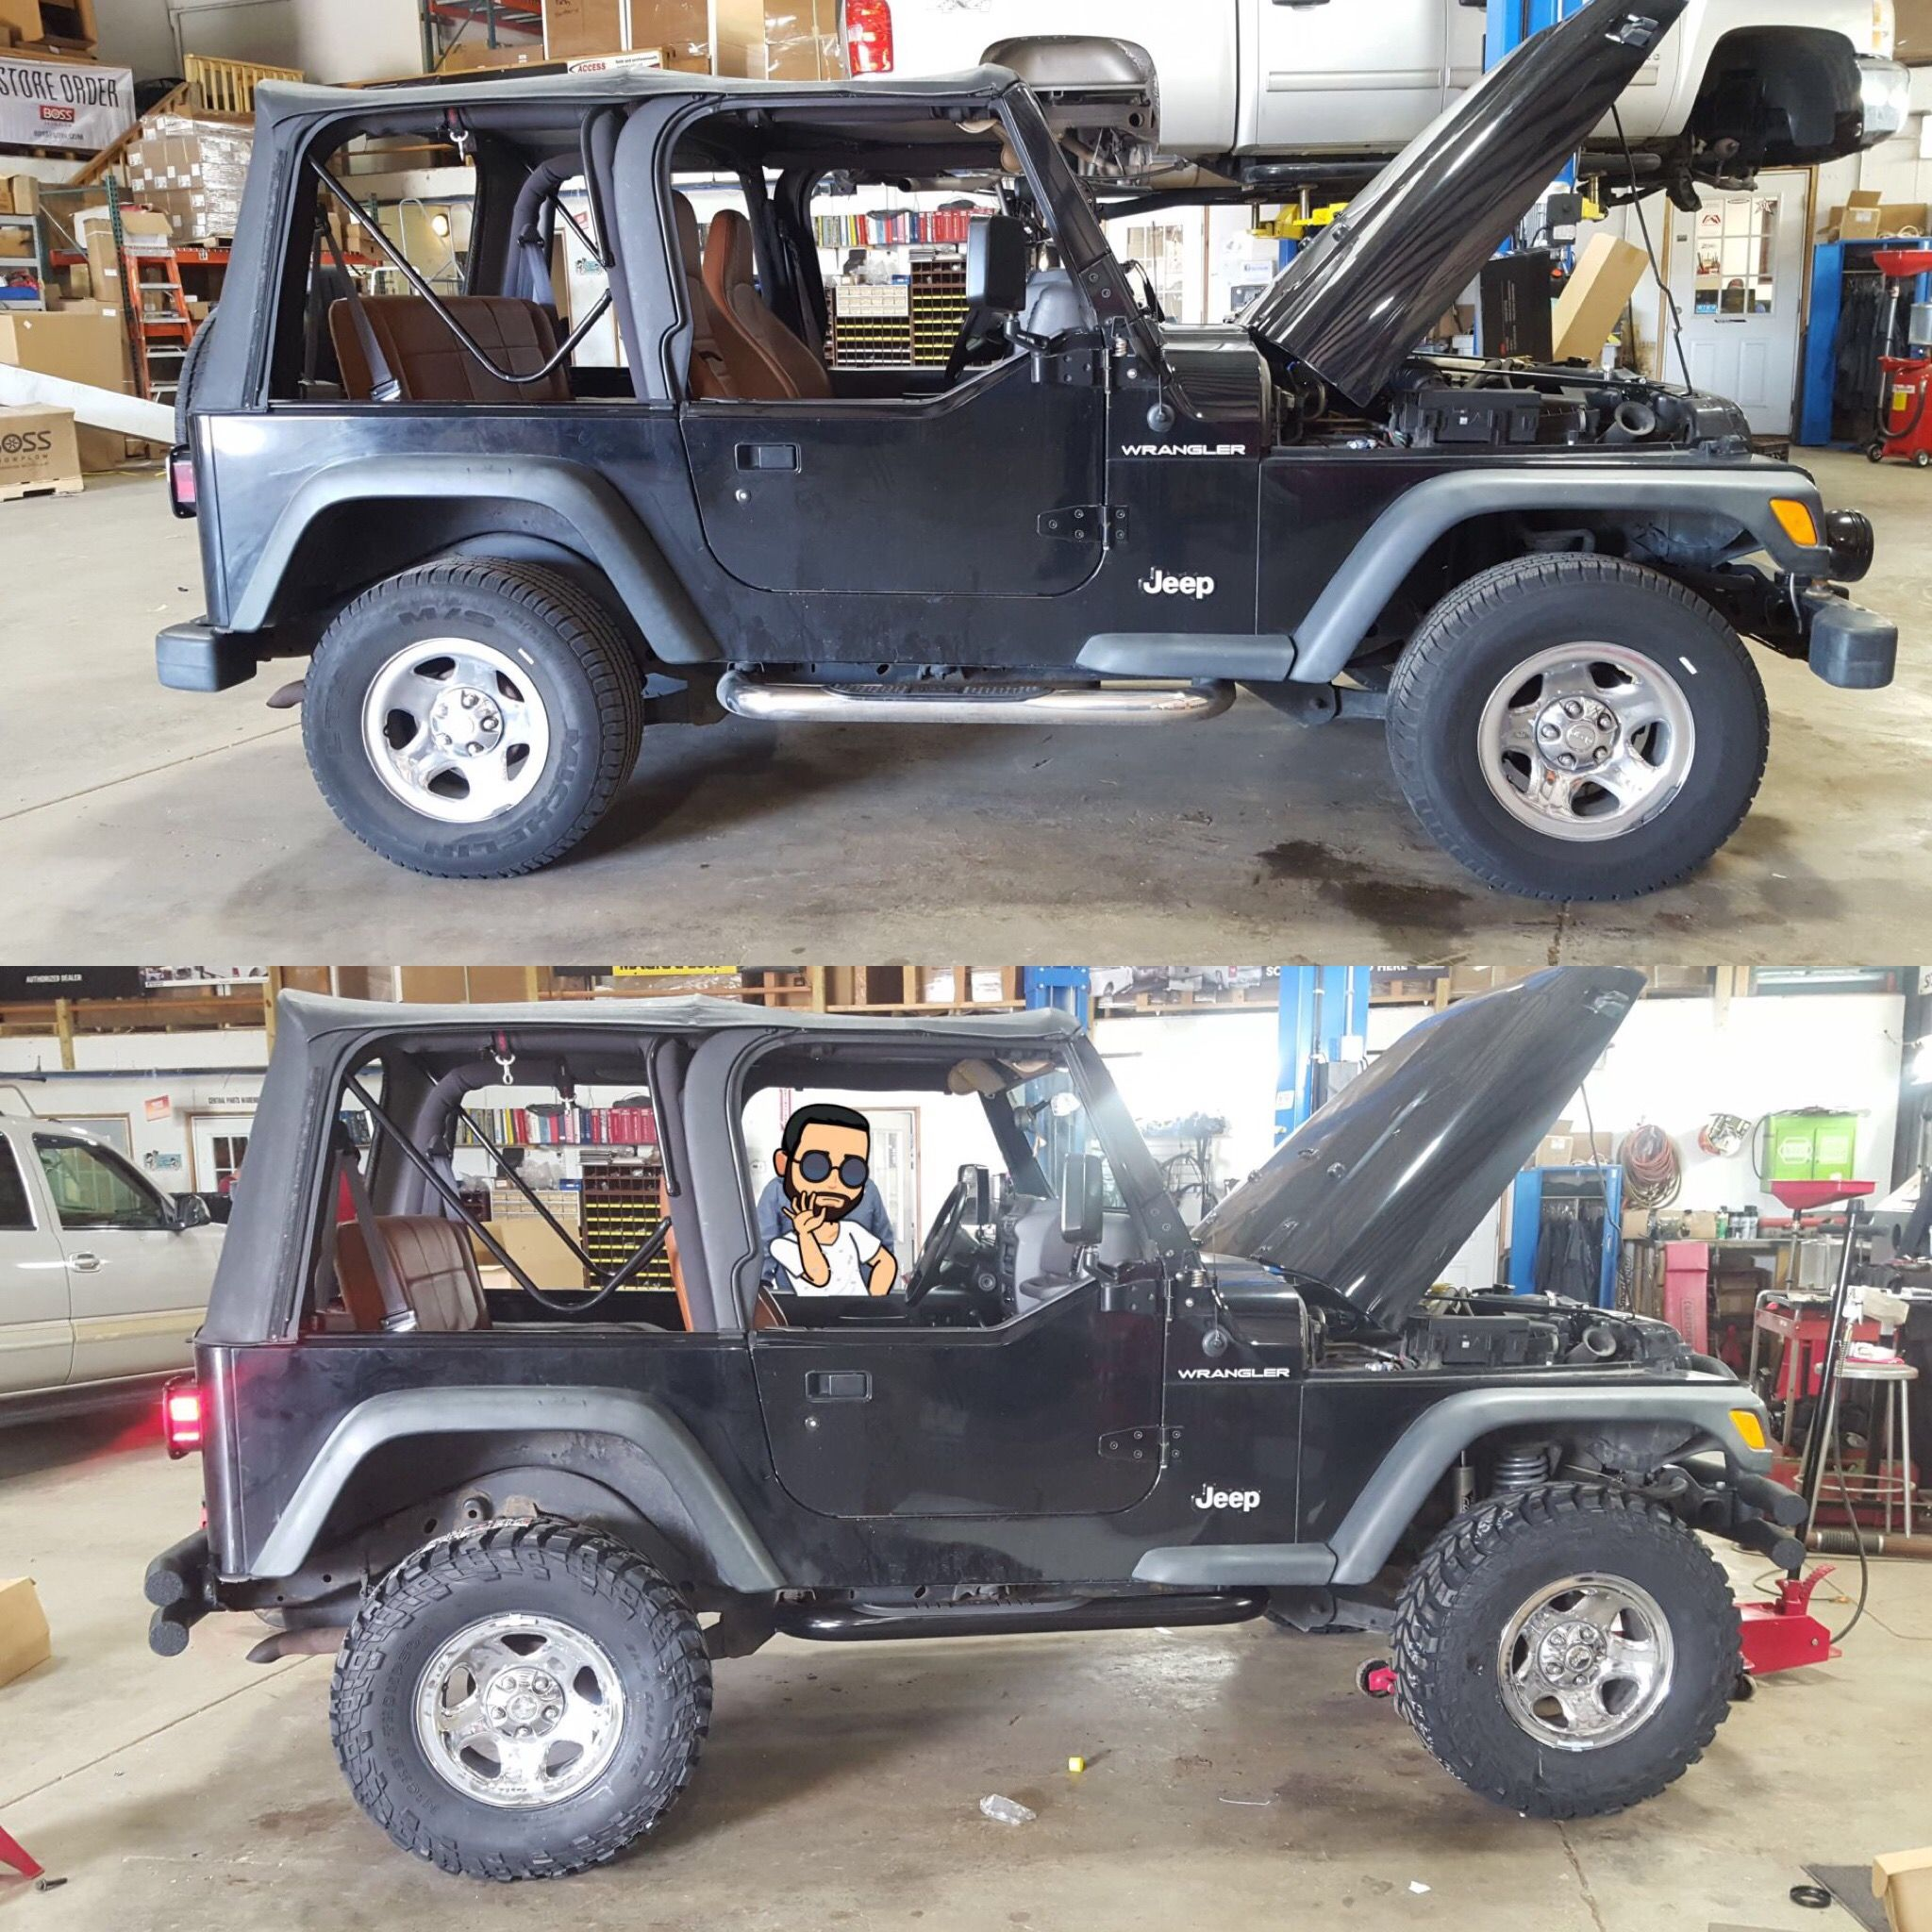 This Jeep Wrangler Got A New Lift Kit And Tires Sold And Installed